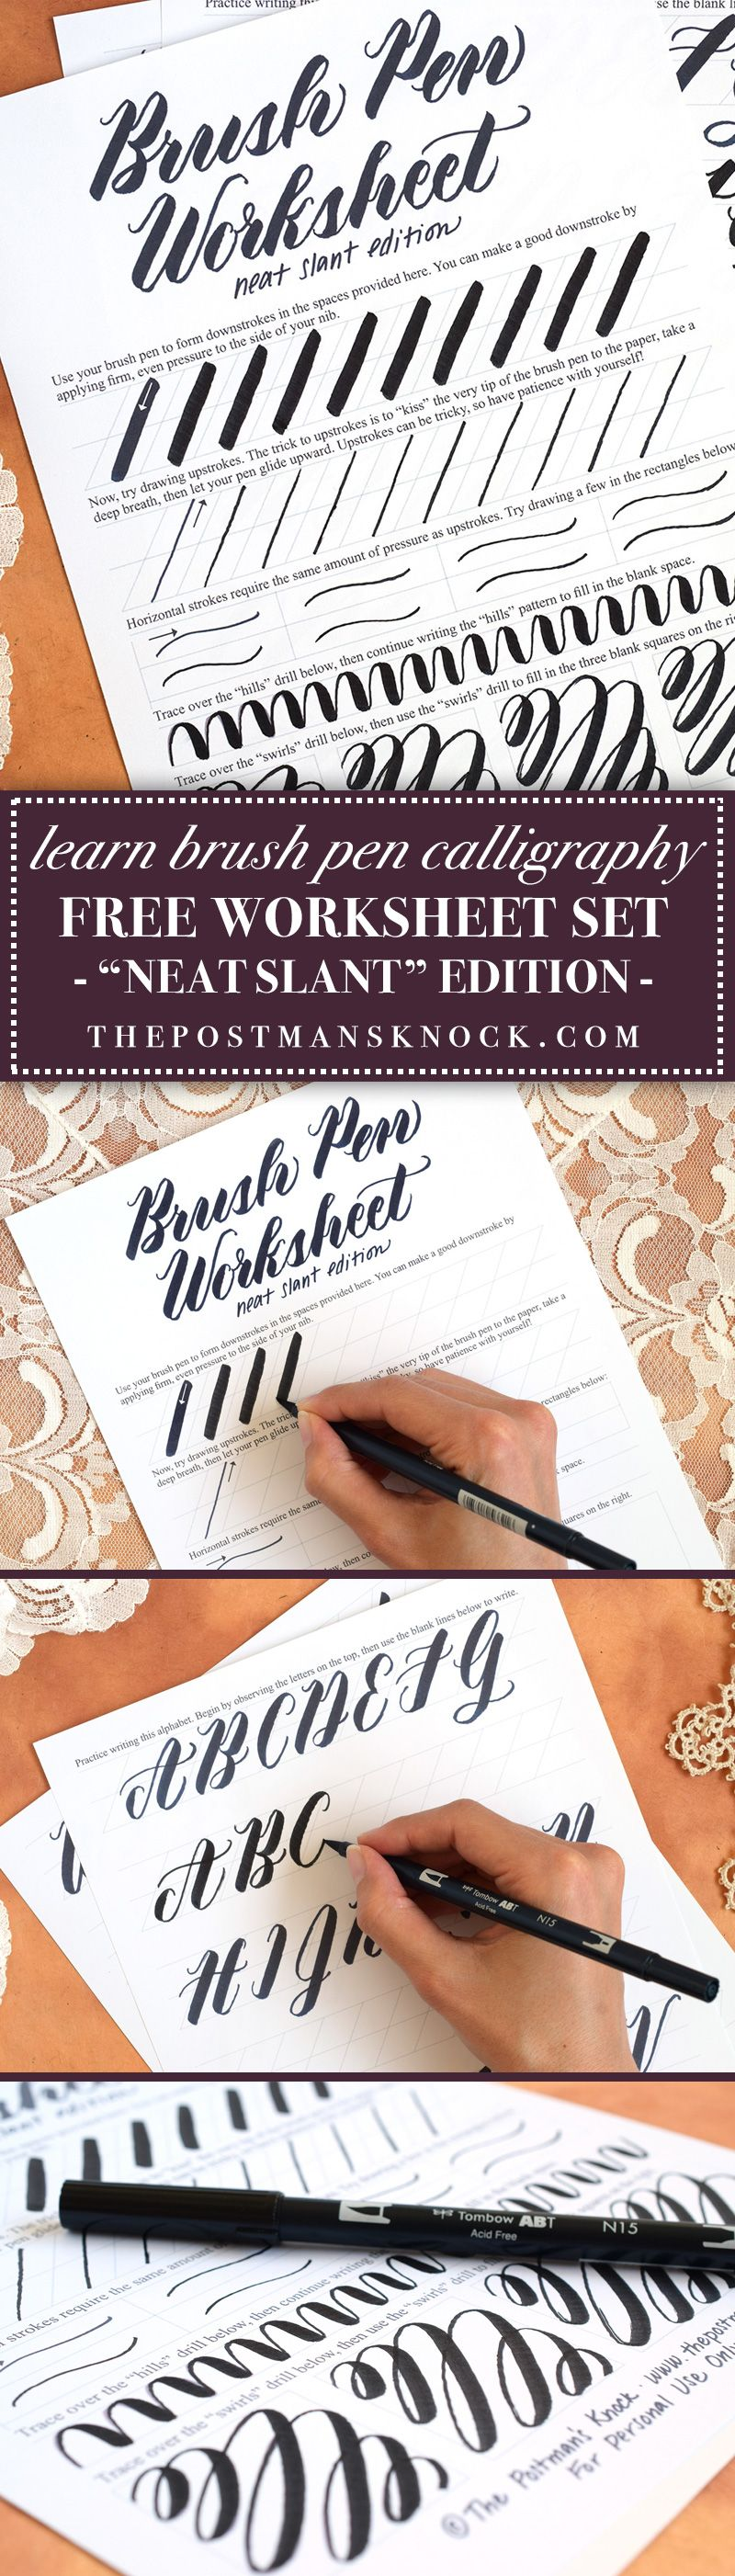 Free Brush Pen Calligraphy Worksheet Neat Slant Edition The Postman S Knock Hand Lettering For Beginners Brush Pen Calligraphy Calligraphy Worksheet [ 2803 x 800 Pixel ]